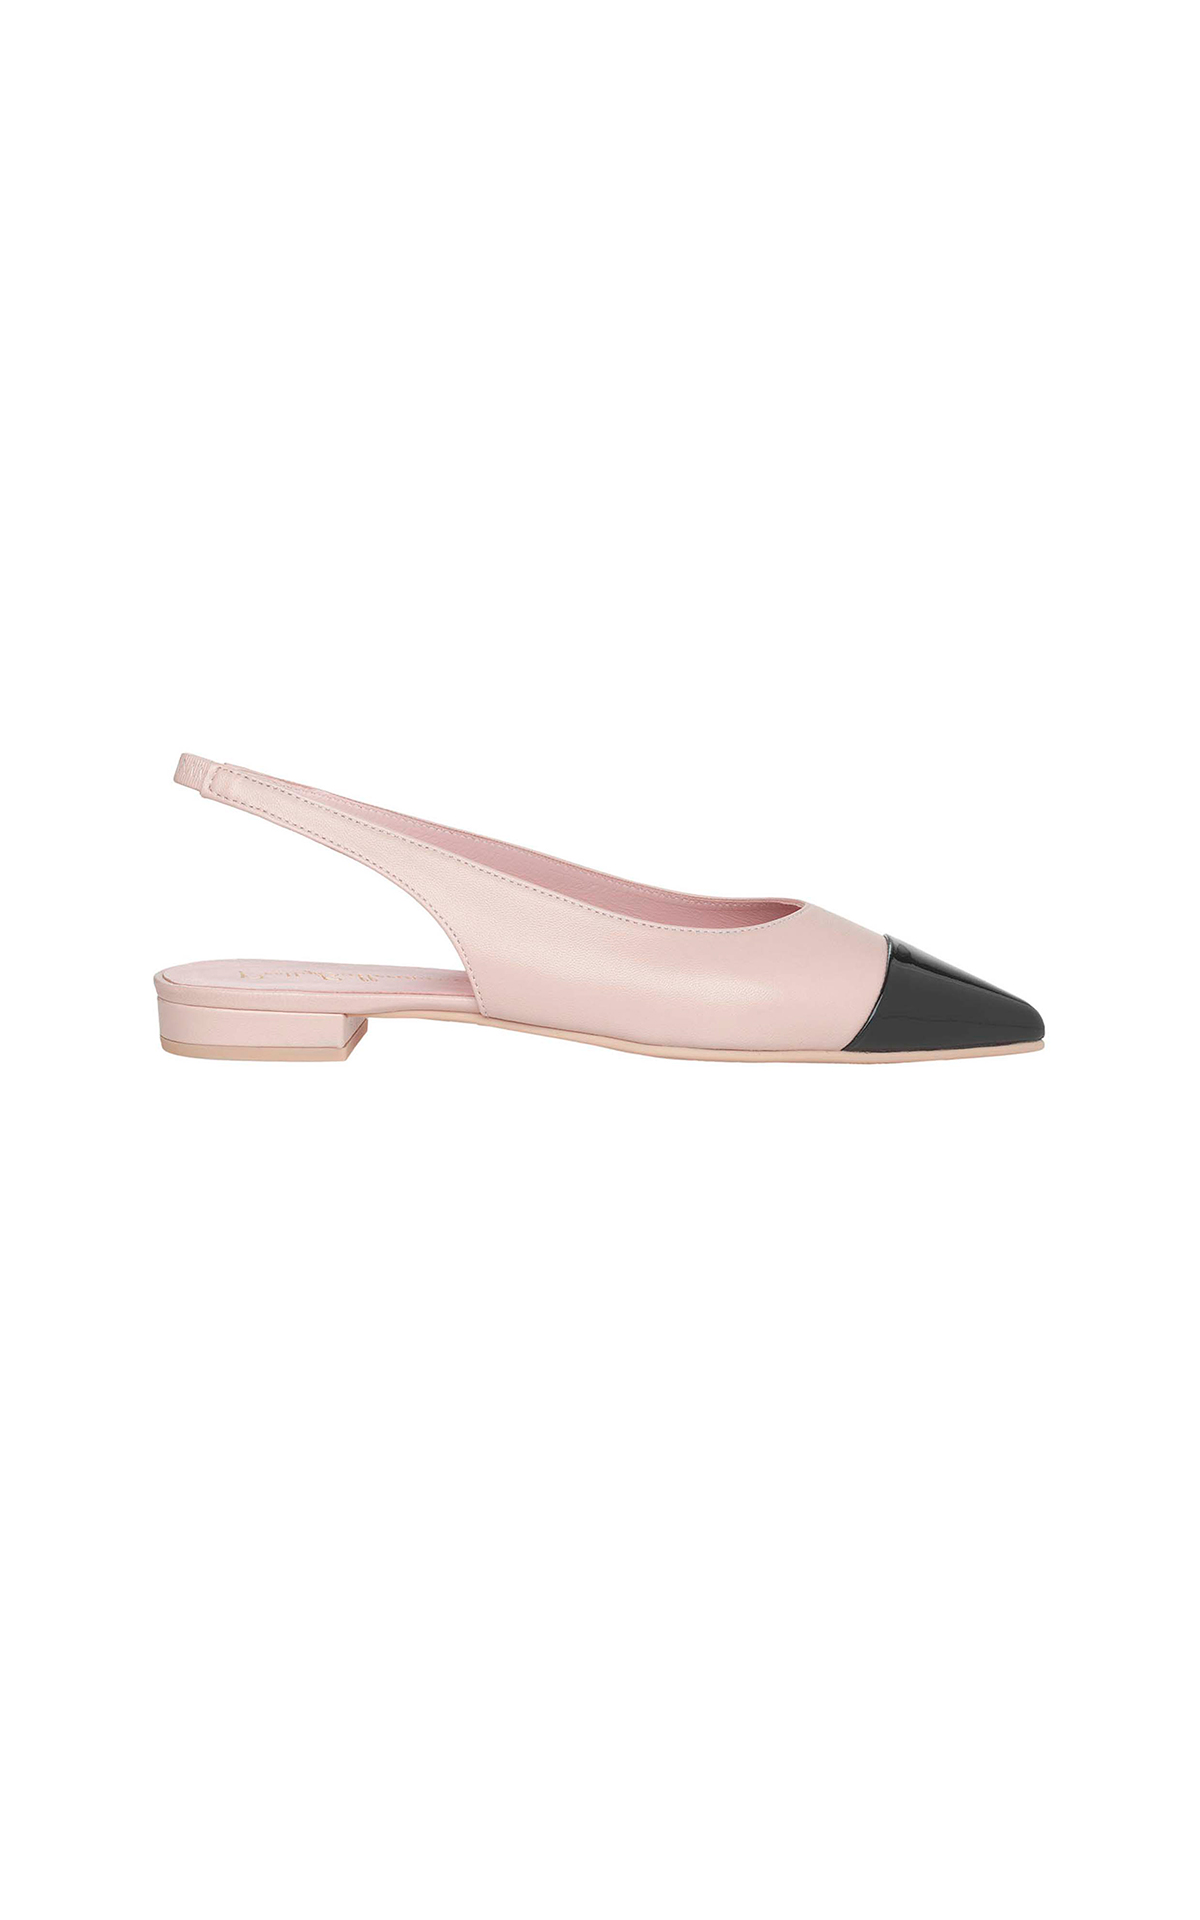 Black and nude slipper Pretty Ballerinas